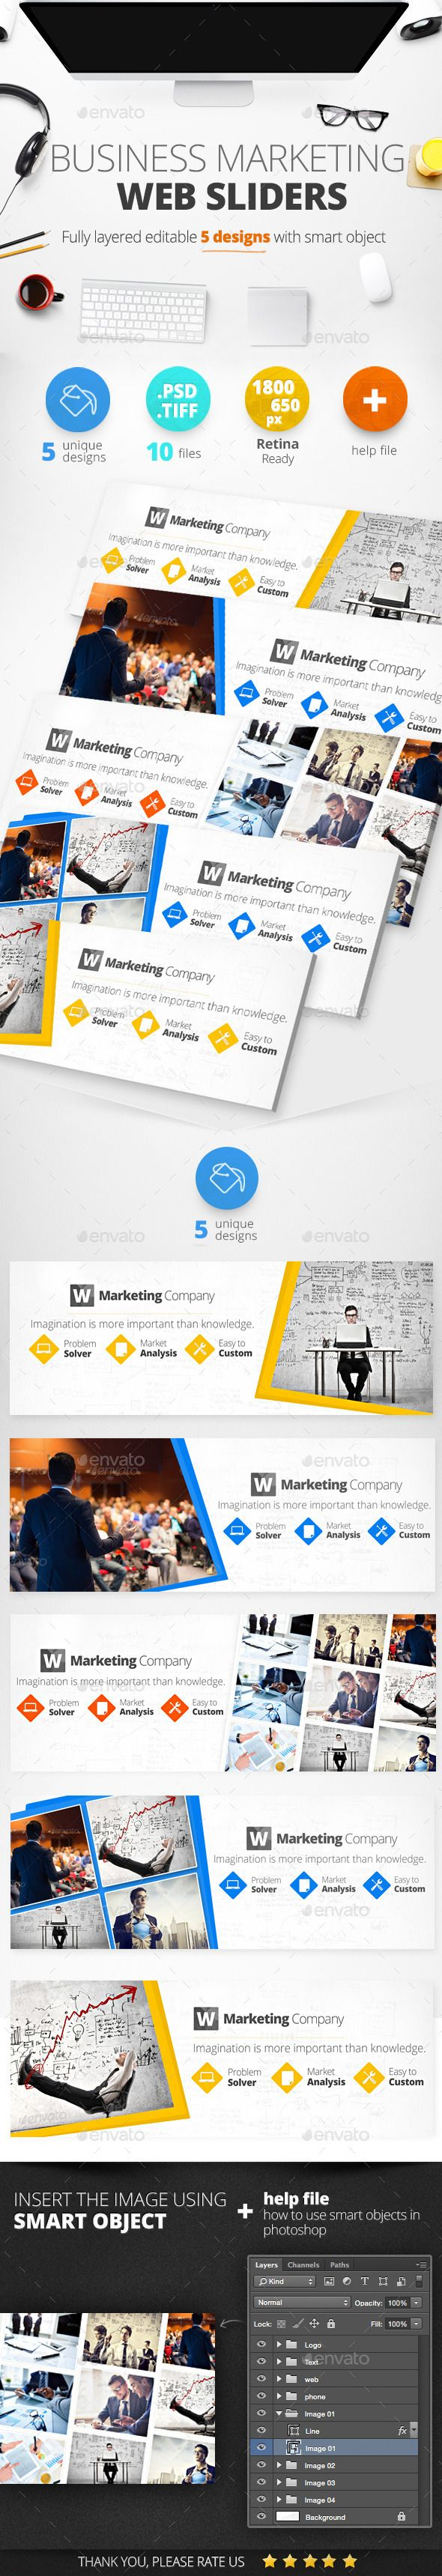 10 best Corporate Business Covers Inspiration images on